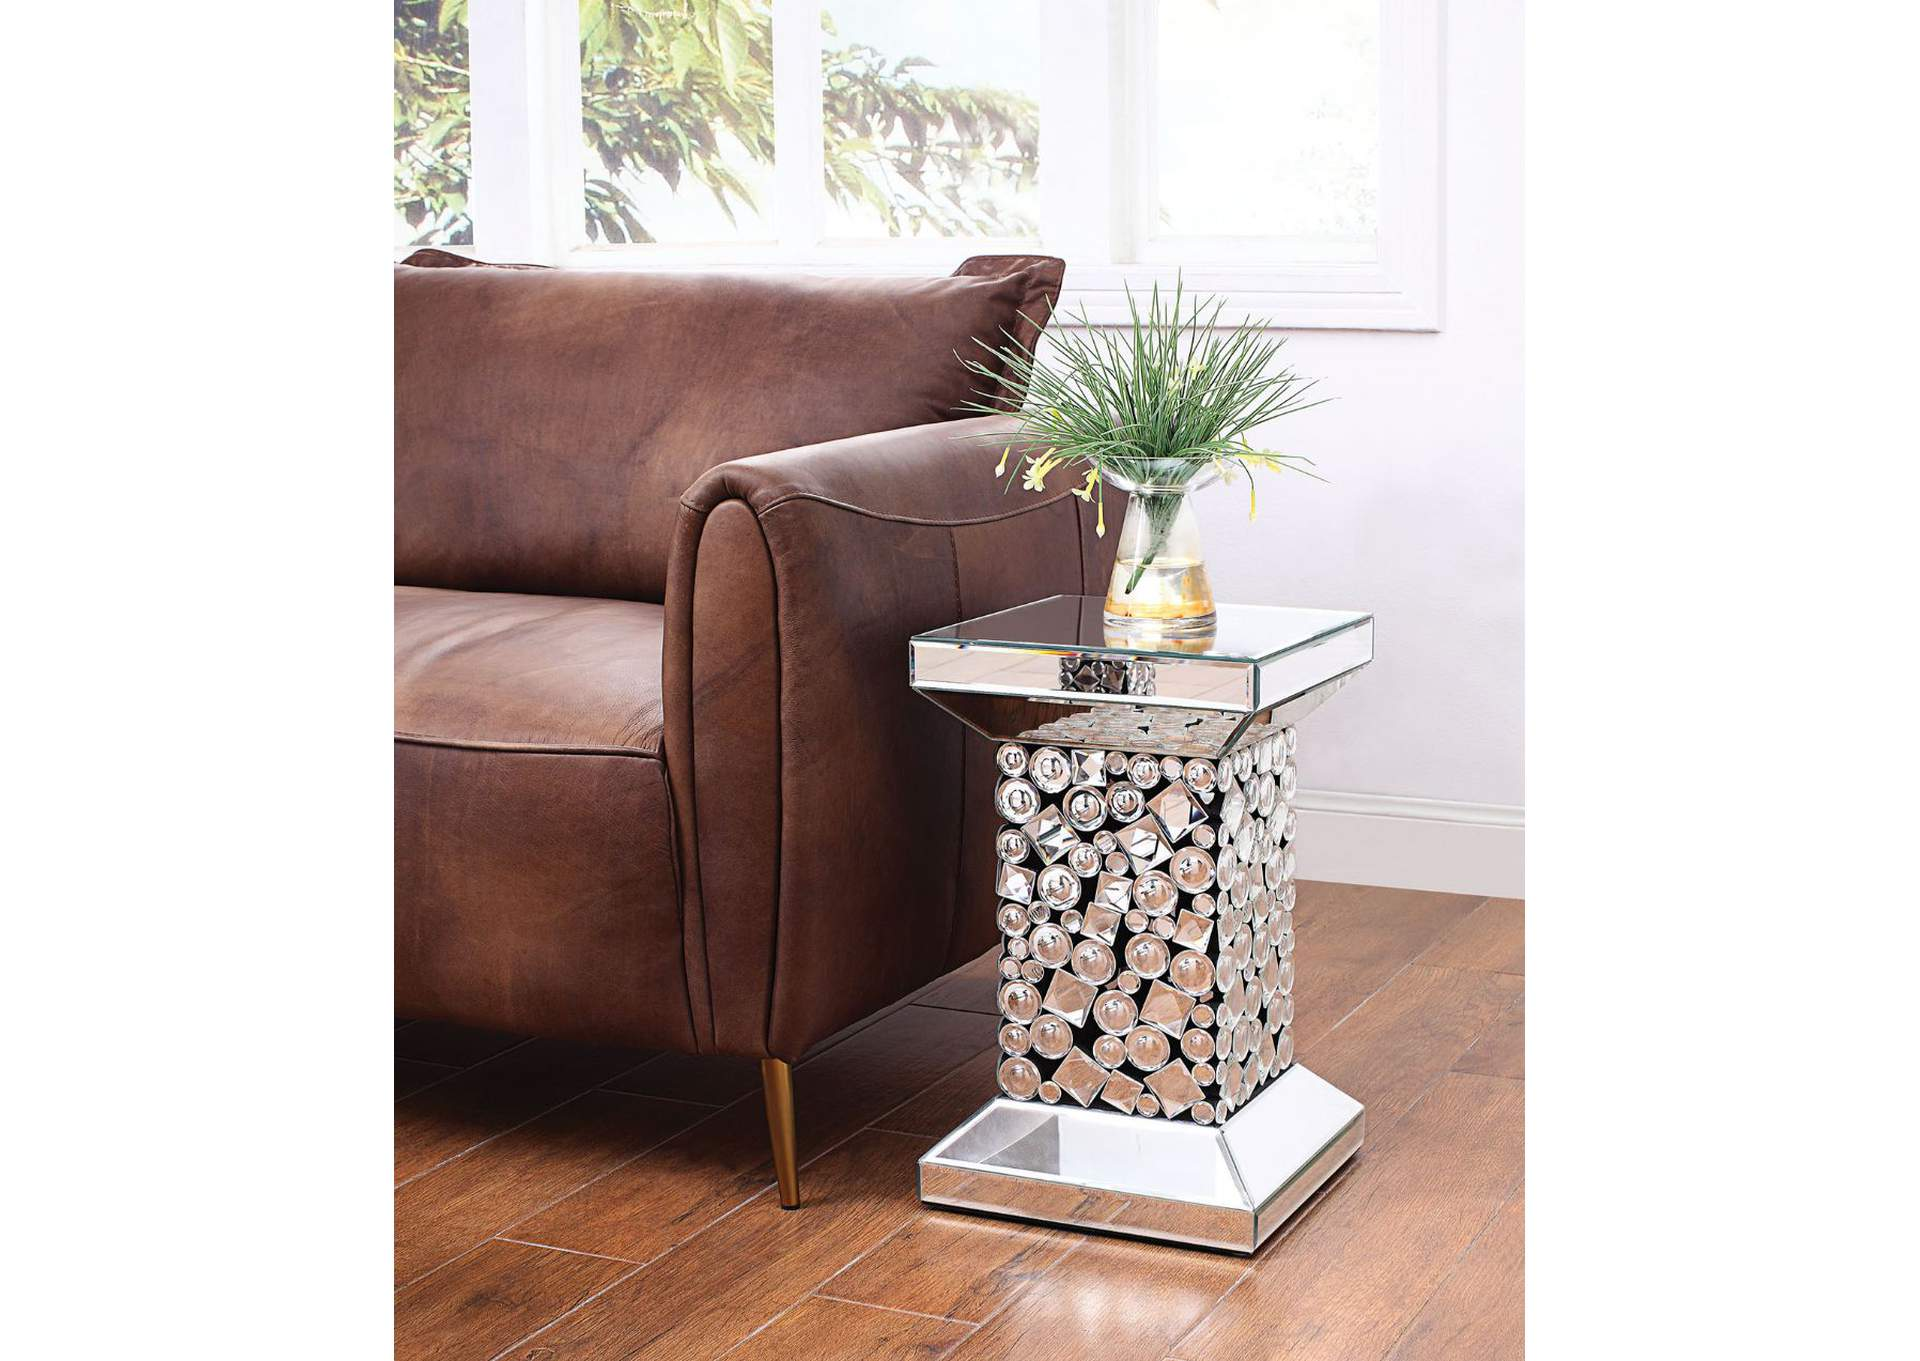 Kachina Mirrored & Faux Gems End Table,Acme